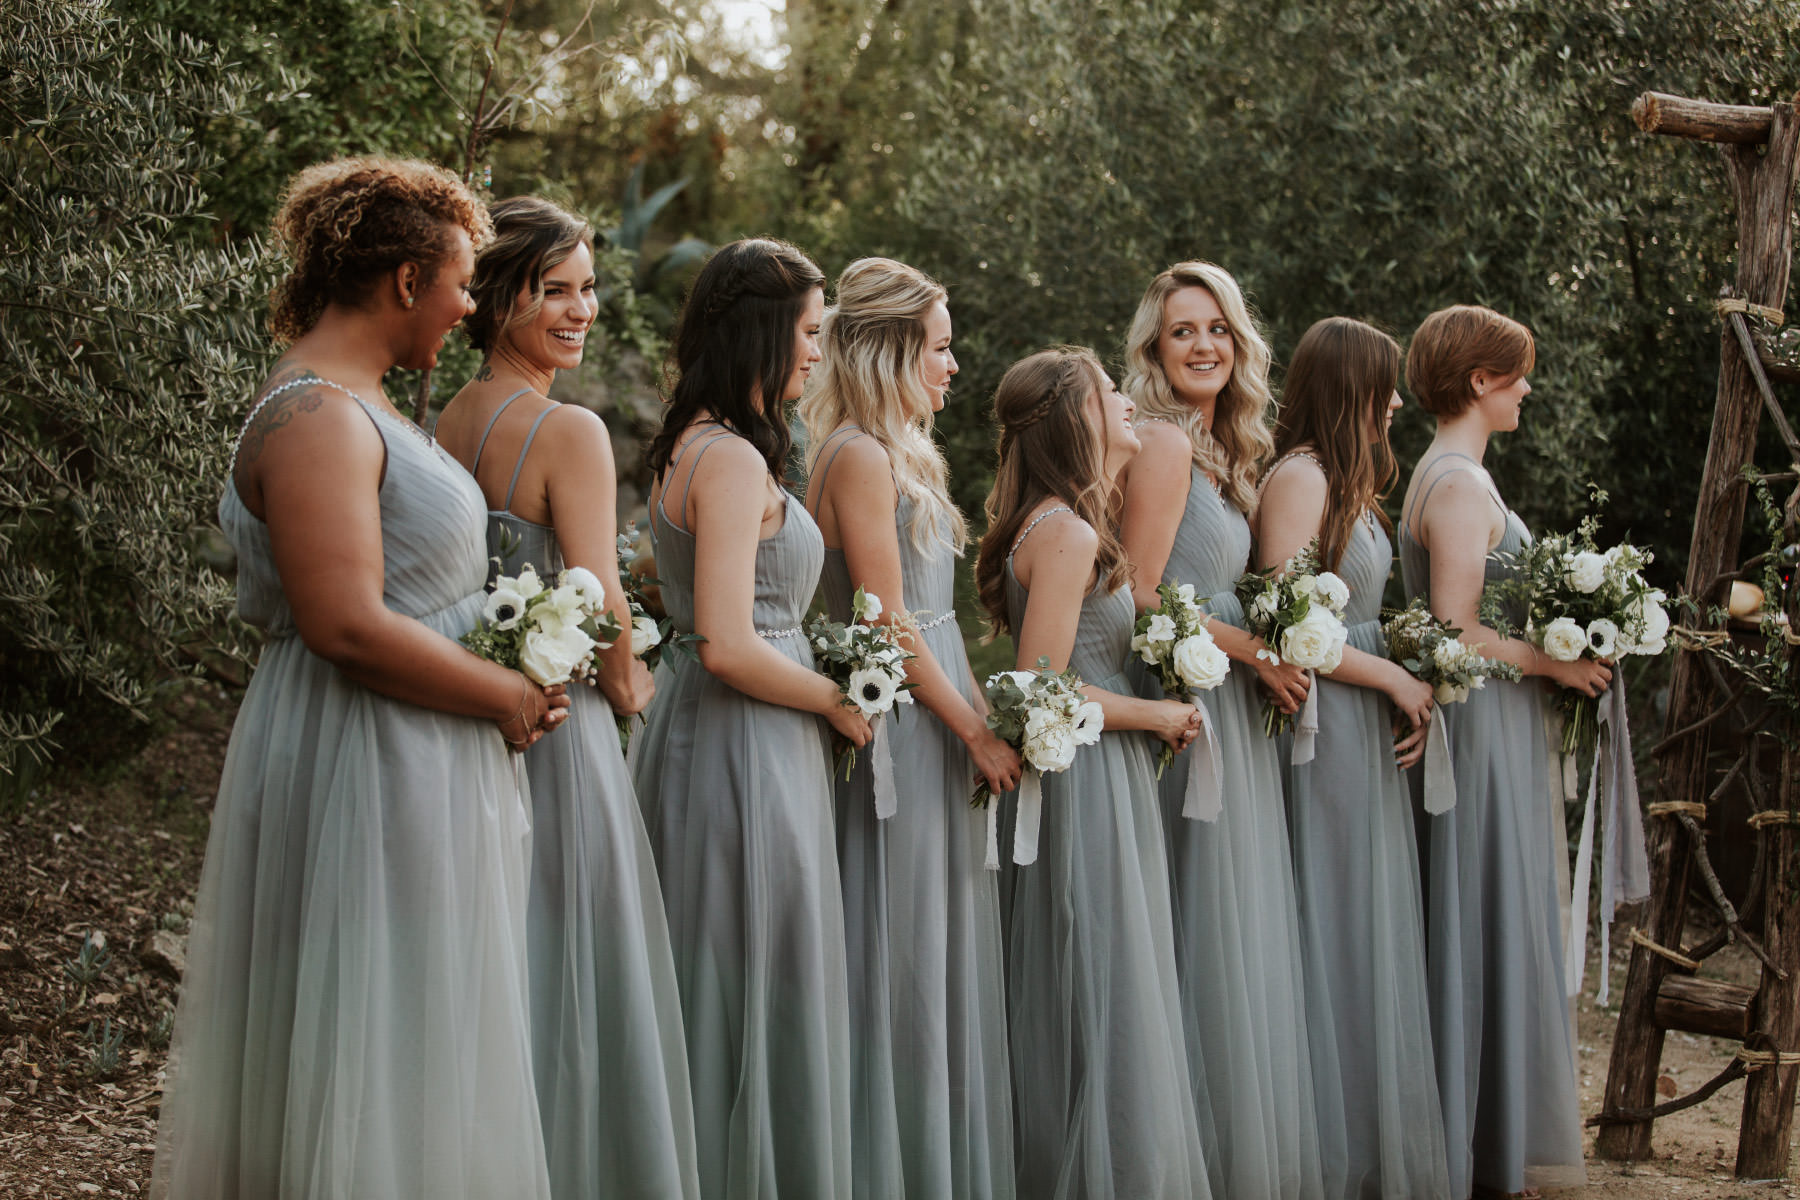 Long dusty blue bridesmaids dresses